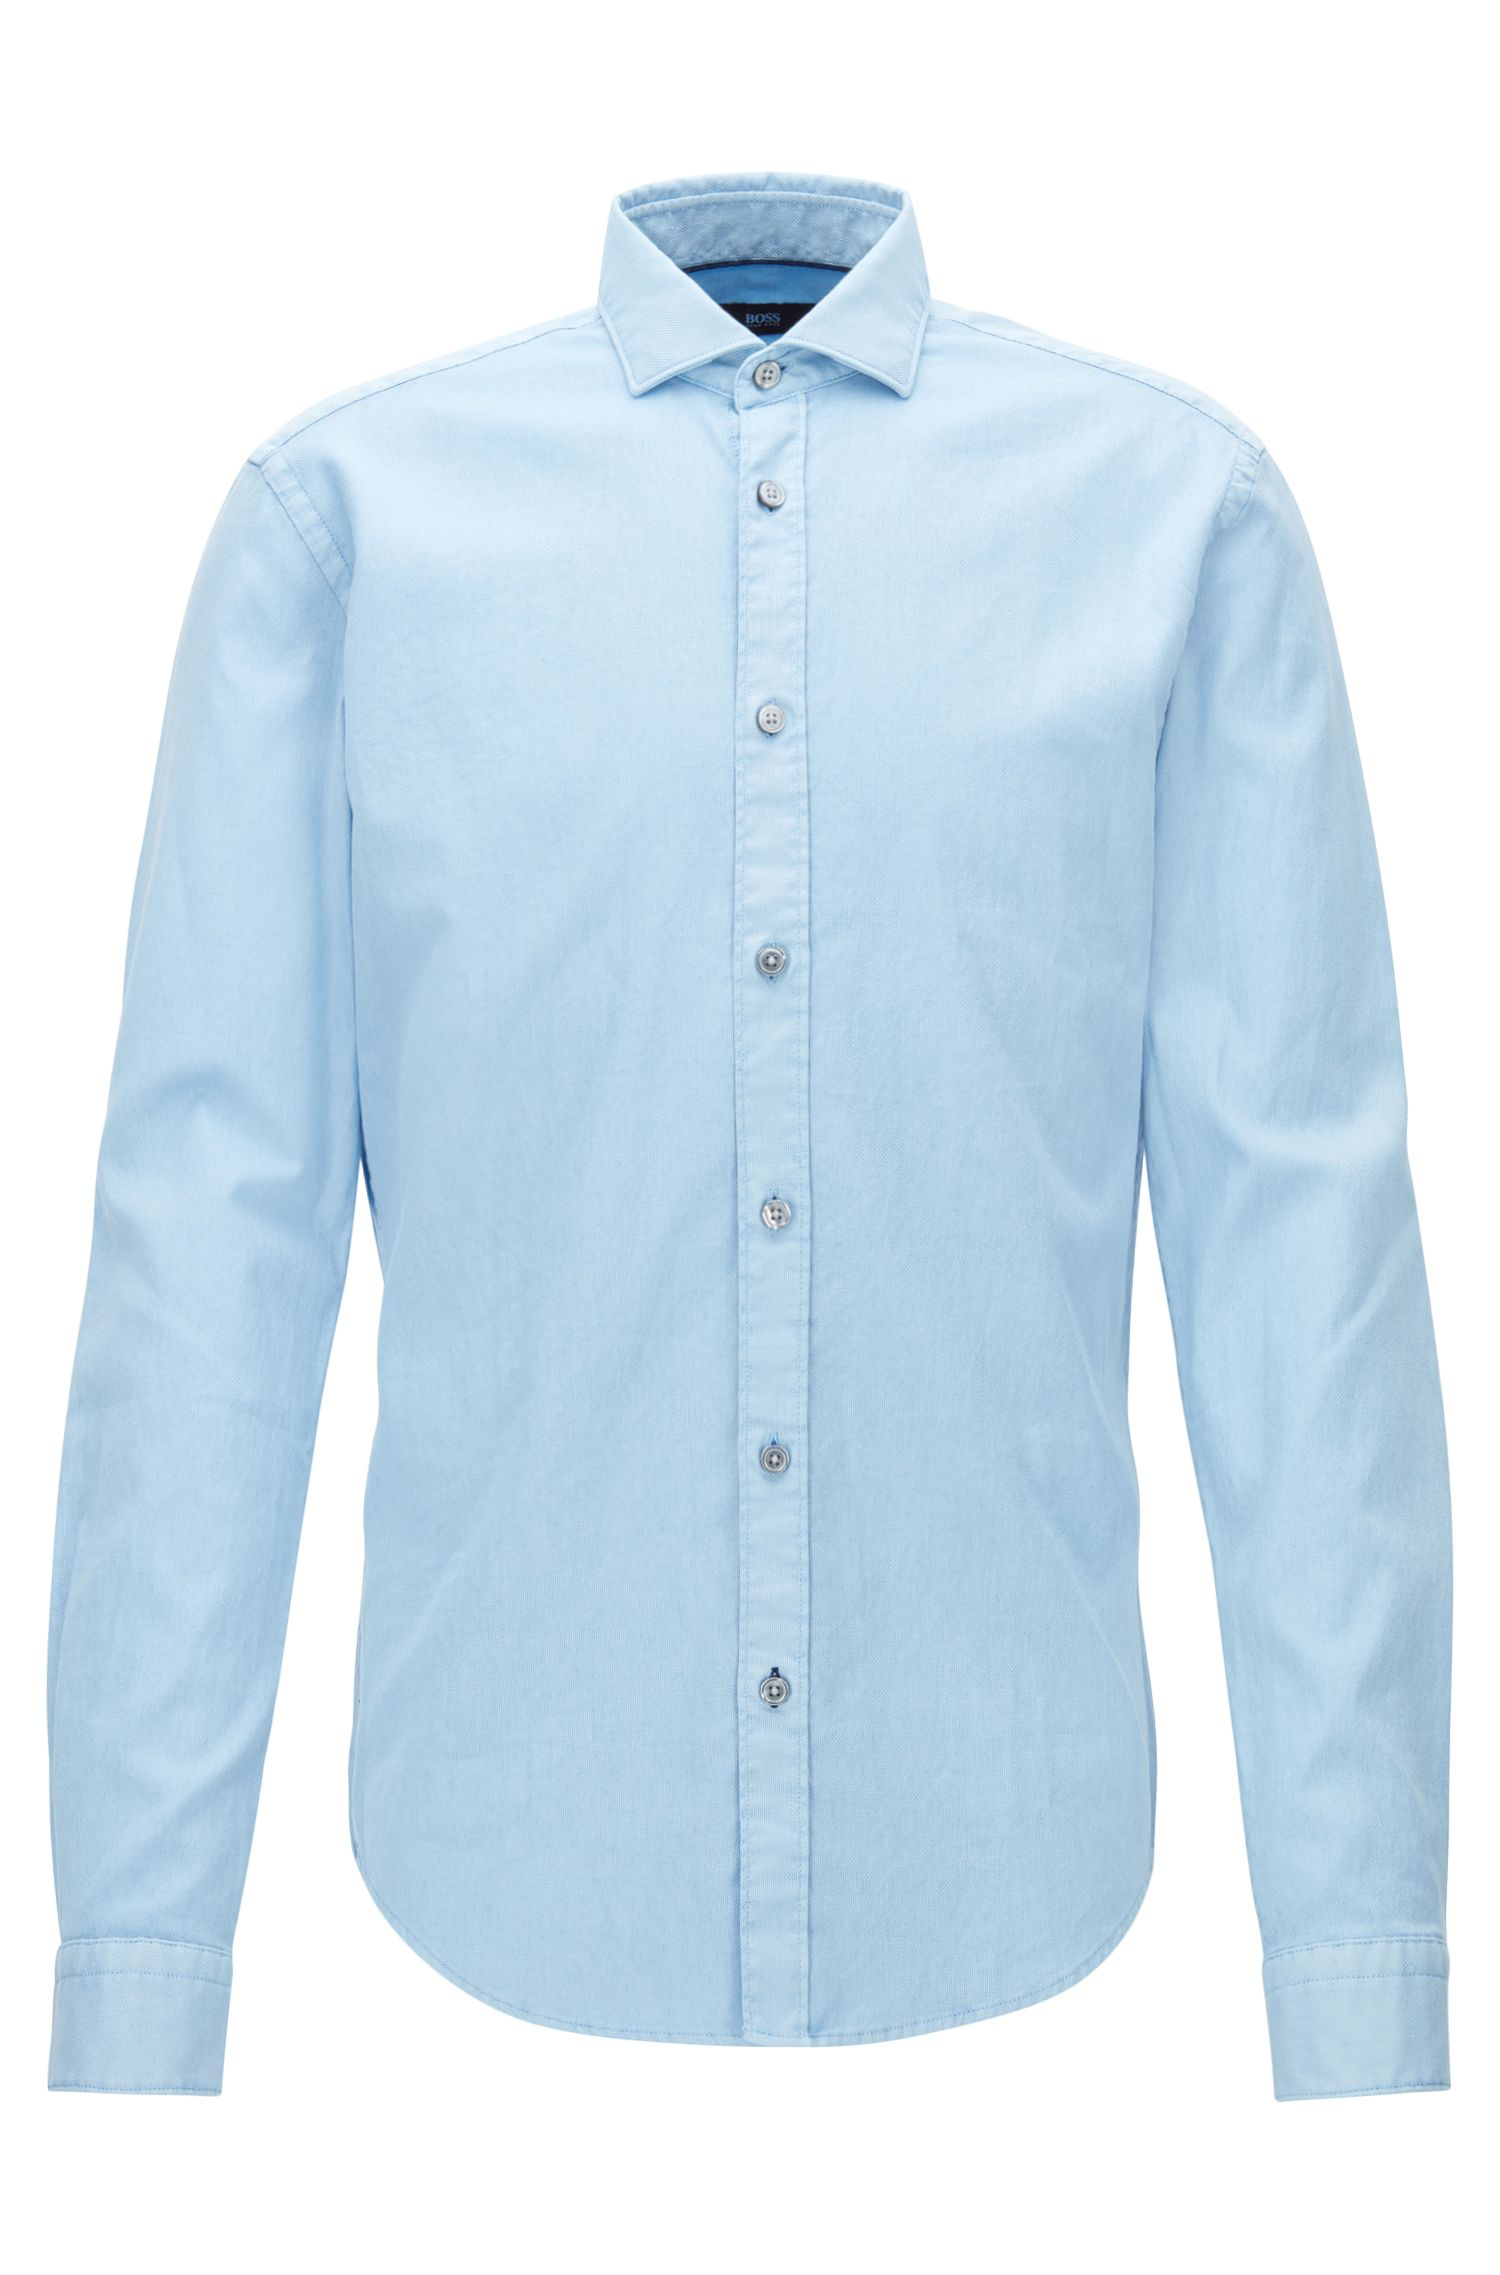 Slim-fit garment-dyed shirt in structured stretch cotton